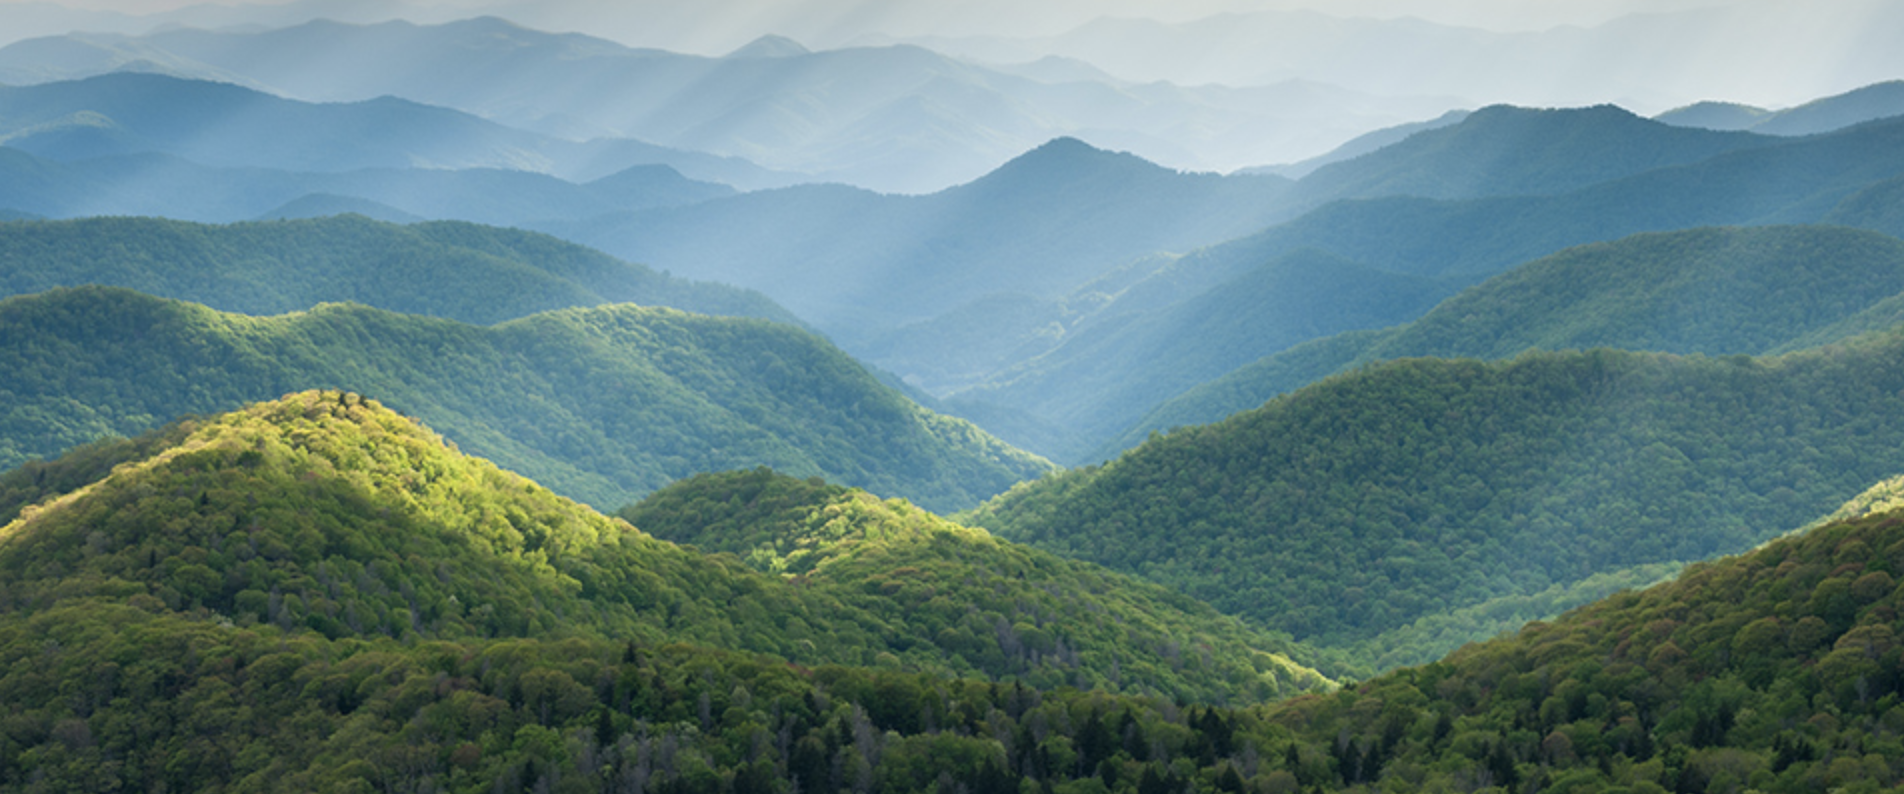 It comes as a no-brainer, but one of the best reasons to visit Pigeon Forge, TN is to get a real life view of the miraculous, picturesque Smoky Mountains.